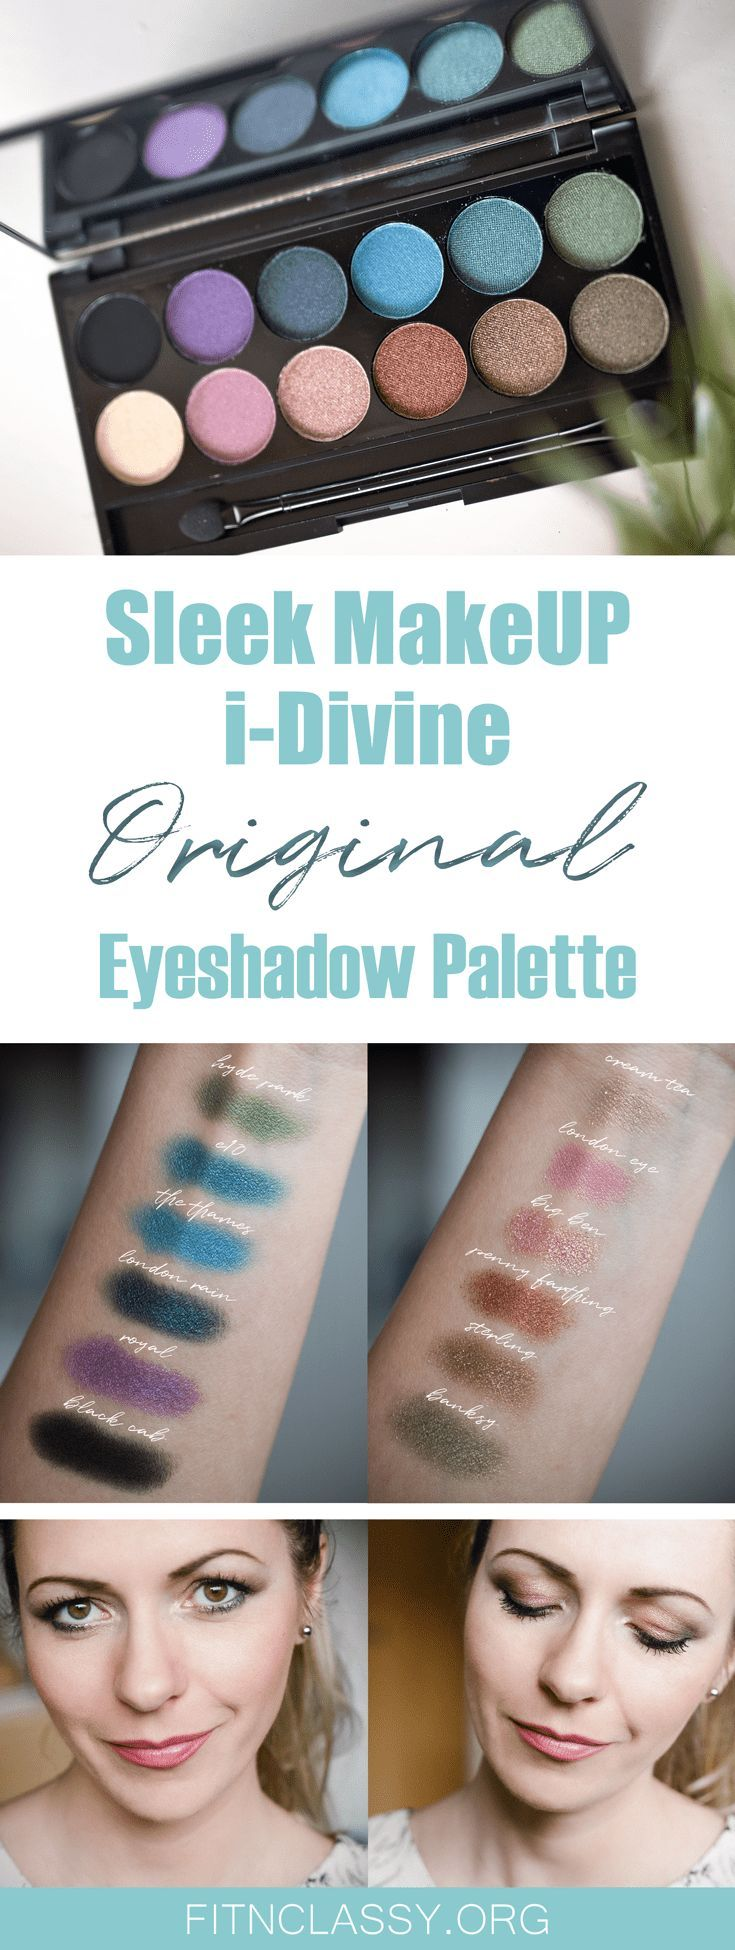 Sleek MakeUP iDivine Original Makeup Palette for a day and night look. Full of shimmery colours. Mineral-based and long-lasting. #makeup #eyeshadow #palette #beauty